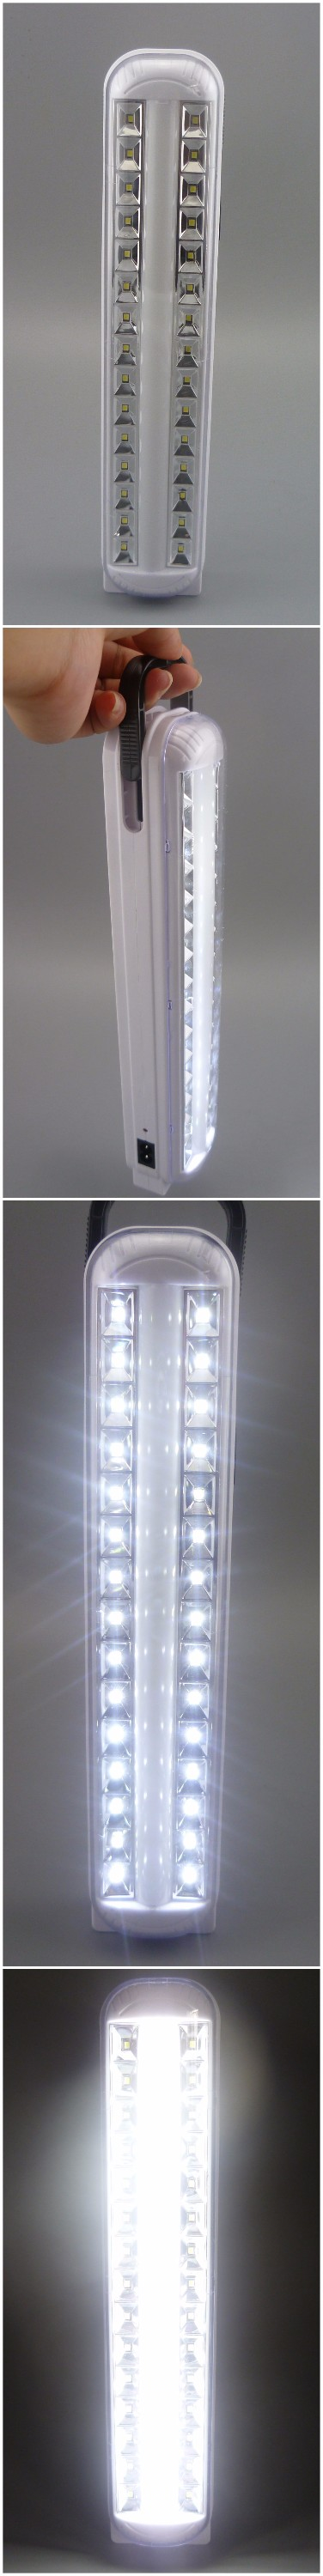 Factory direct rechargeable led emergency bulb E27 B22 led emergency lighting lamp